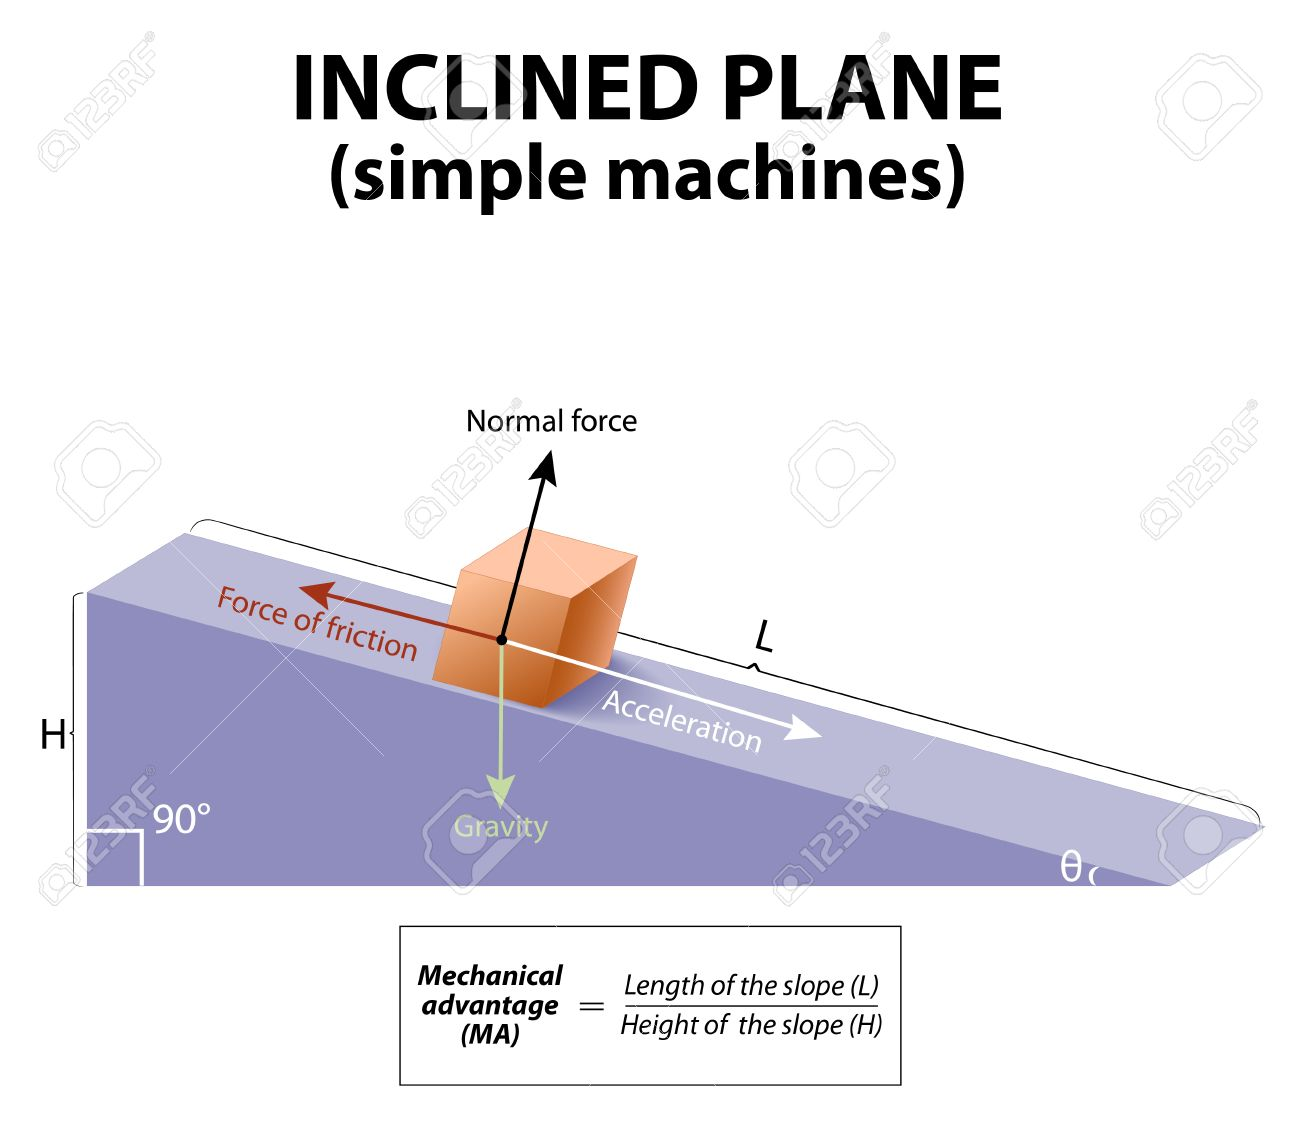 inclined plane simple machine easy inclined plane simple machines forces acting upon an object on inclined plane plane simple machines forces acting upon an object